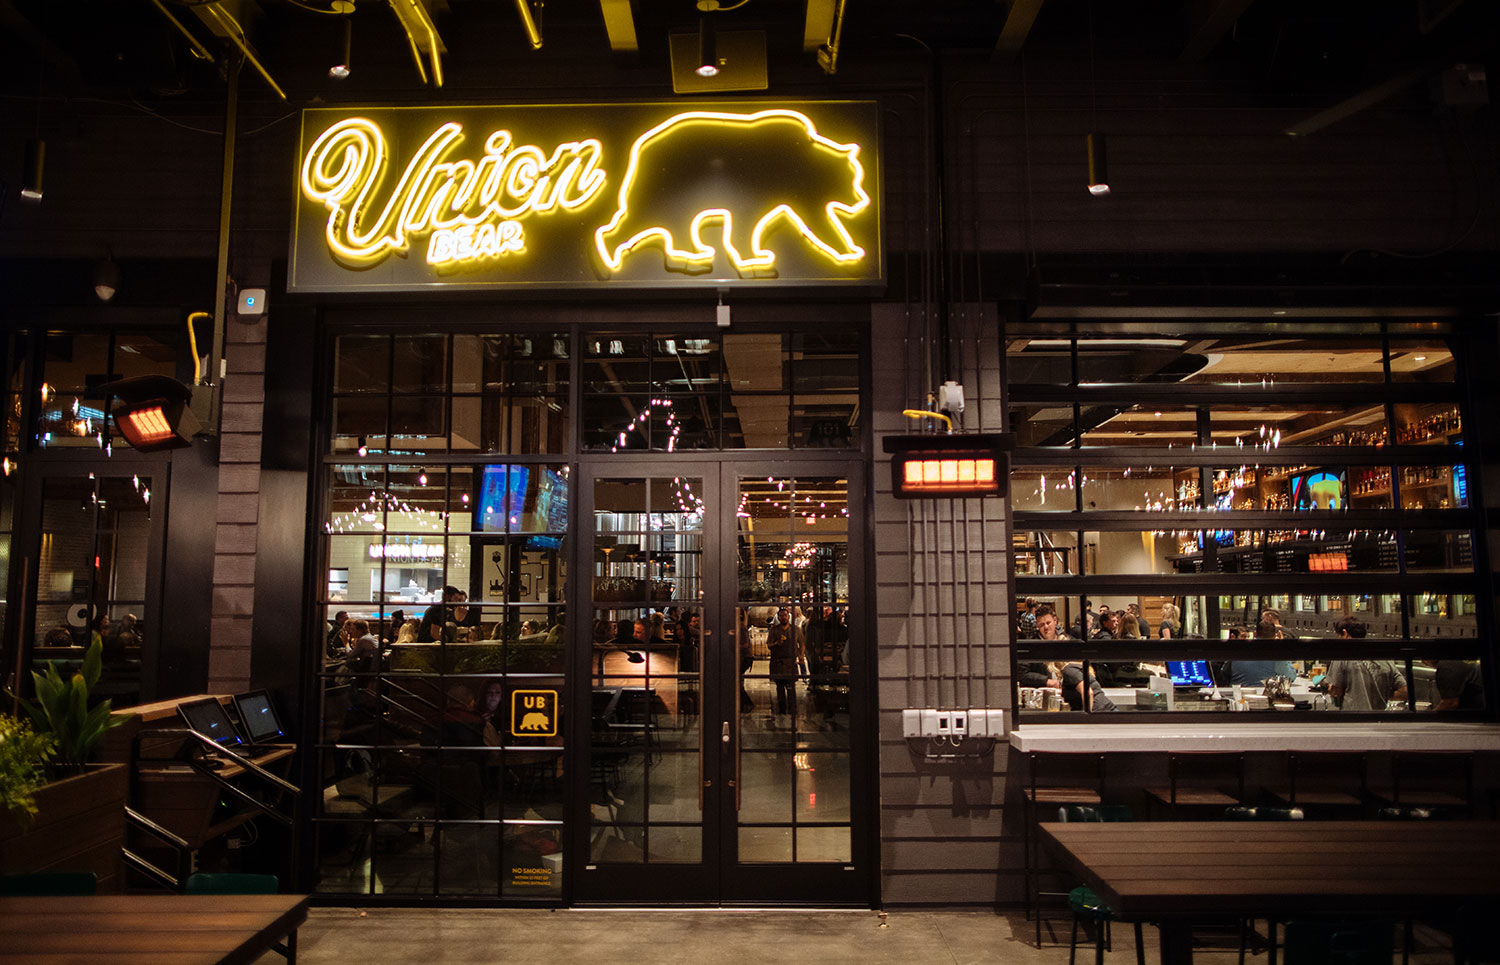 Union-Bear-Brewing-Restaurant-Pub-Plano-Magazine-8-Kathy-Tran.jpg